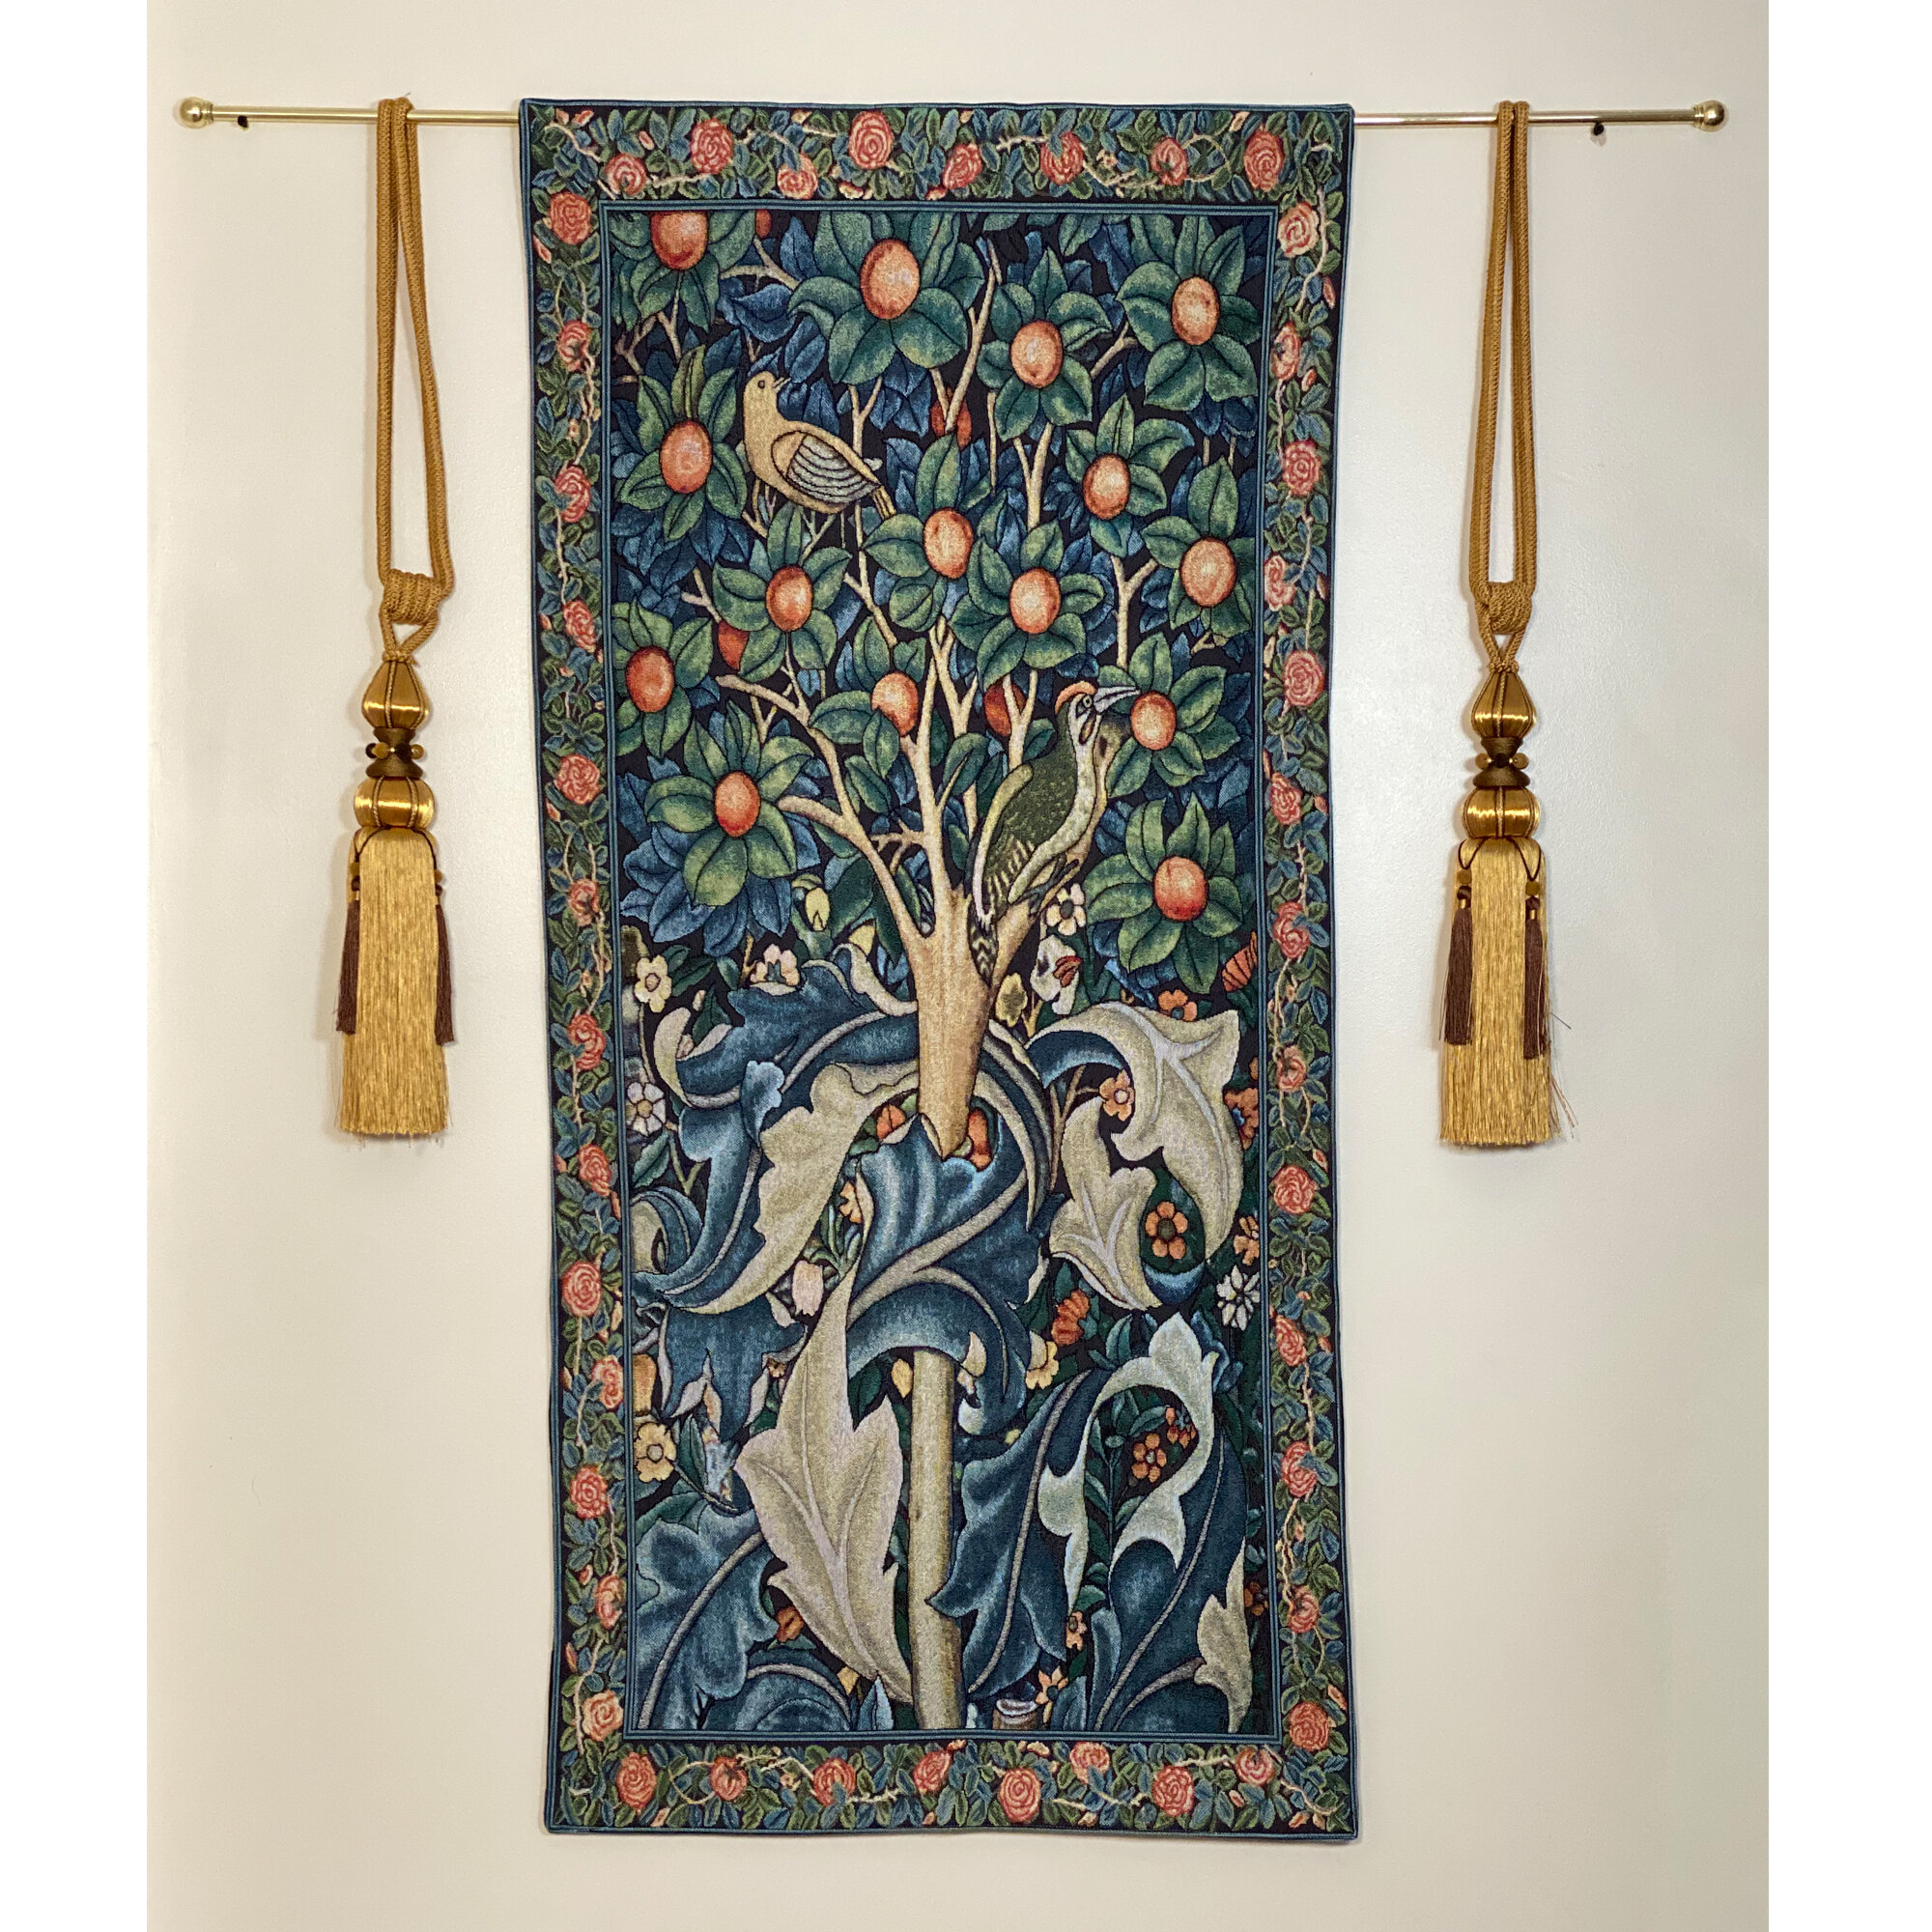 Cotton William Morris Woodpecker In Fruit Tree Wall Hanging Regarding Latest Blended Fabric Amazing Grace Wall Hangings (View 8 of 20)